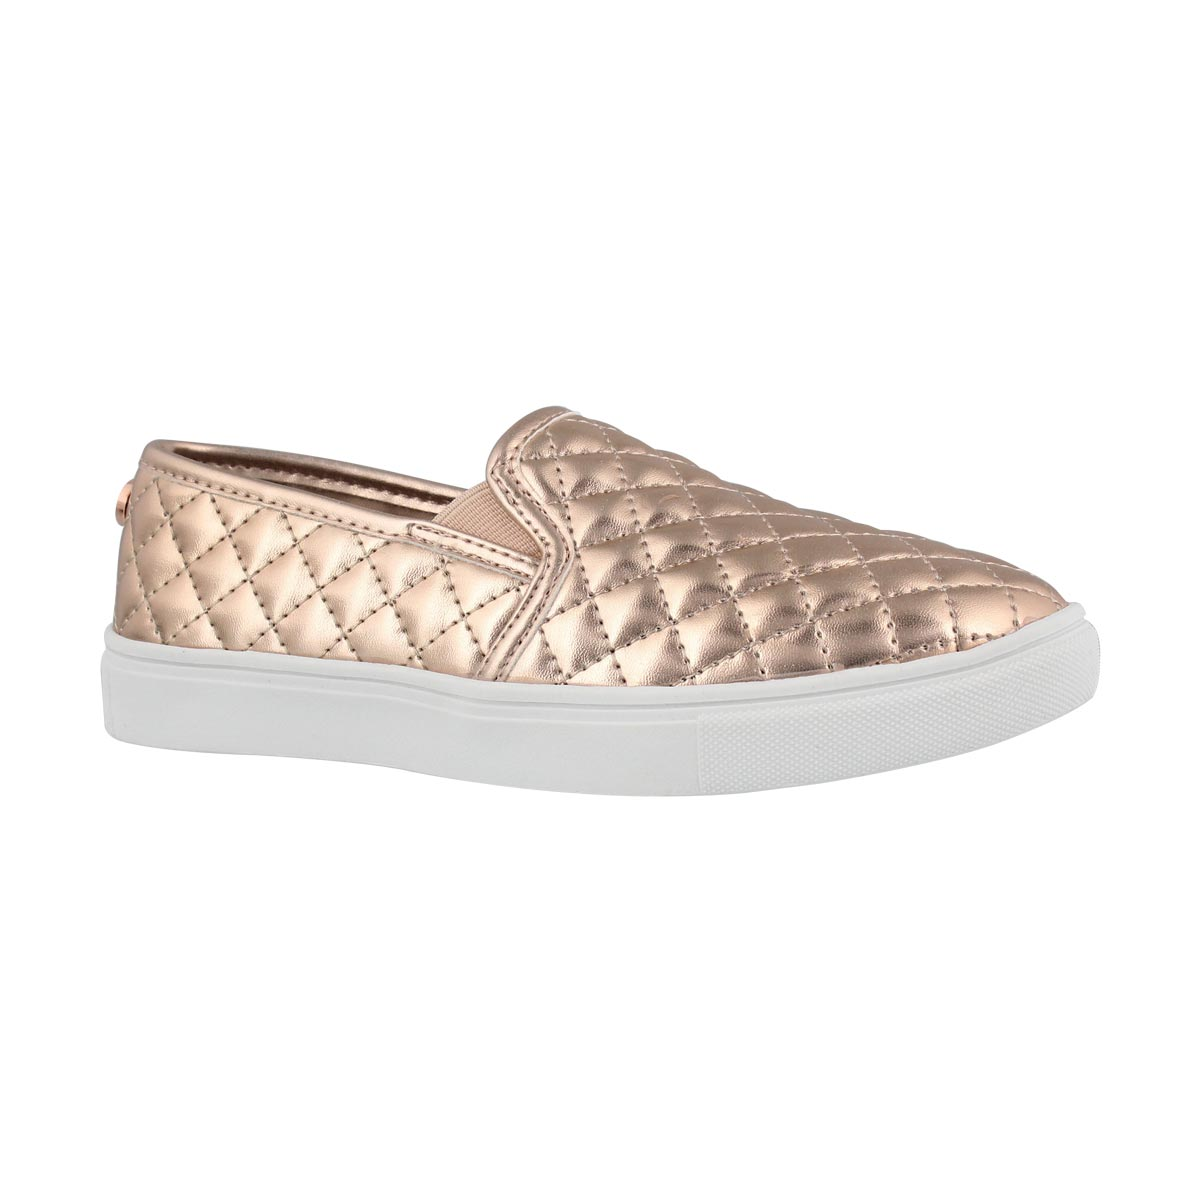 Grls J Ecentrcq rose gold casual slip on